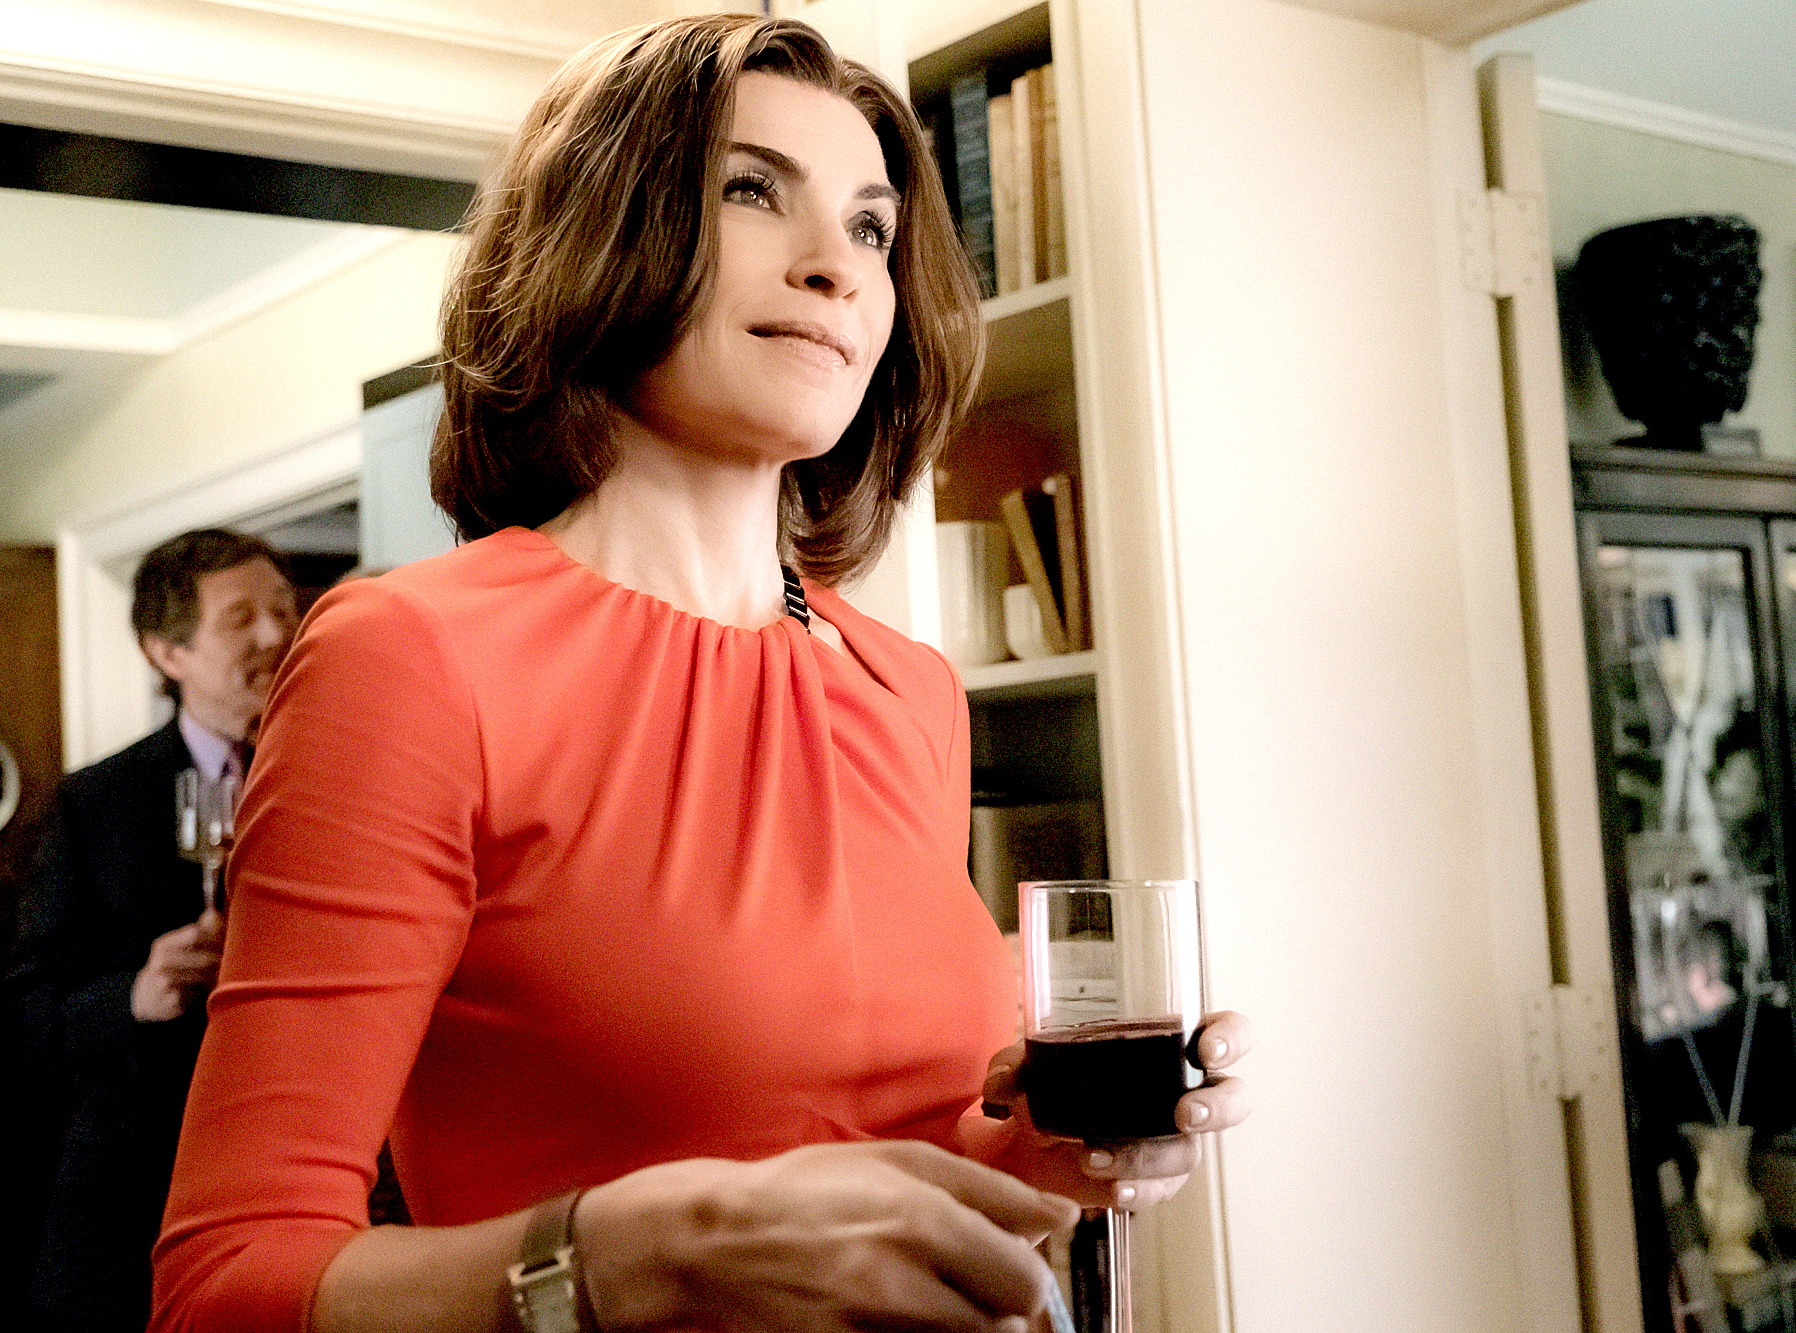 Julianna Margulies as Alicia Florrick on The Good Wife.